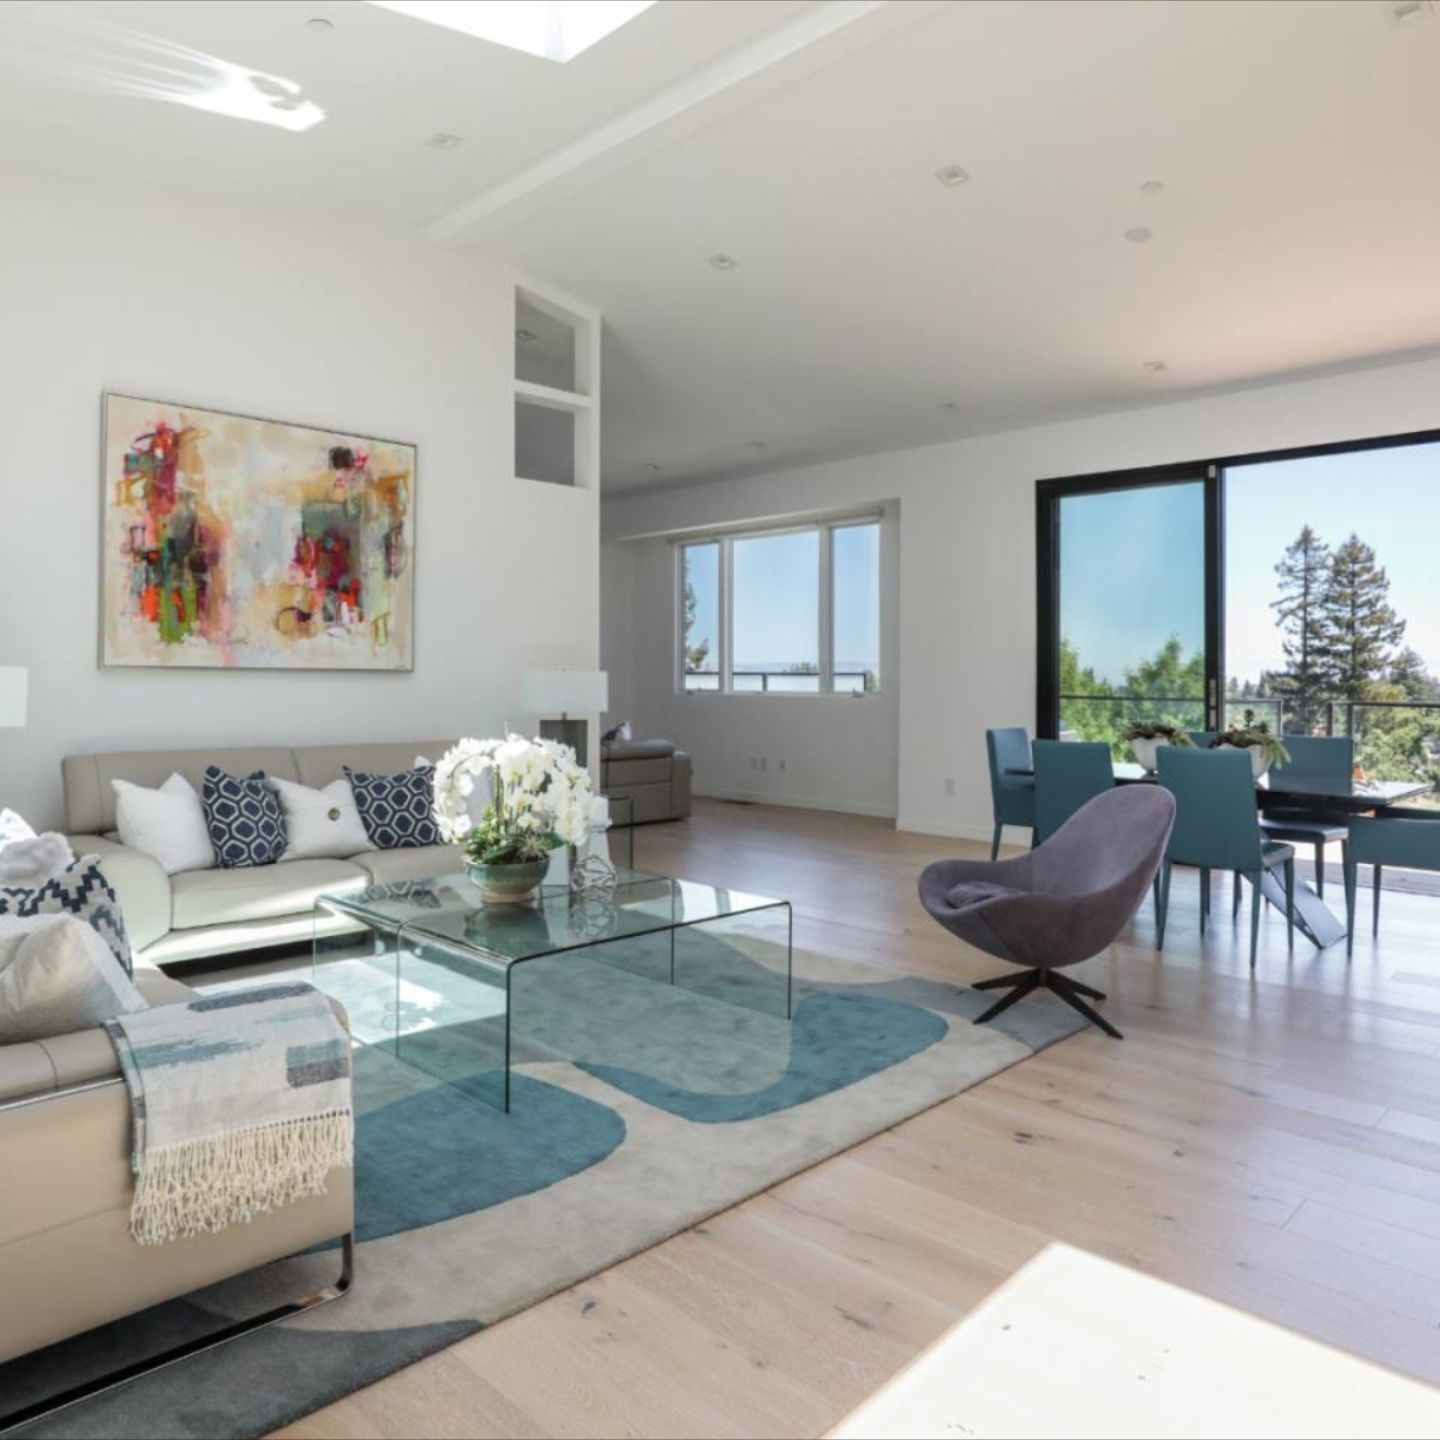 345 Oakview Dr, San Carlos, CA 94070 | $3,380,000  4 Beds | 3 Baths | 2,667 Sq. Ft.  For questions or for private showing contact: Carolyn Botts Compass P: (650) 207-0246 E: carolynb@apr.com  #homeforsaleinSanCarlos #homesforsale #SanCarlosHomes #houseforsale #forsale #realtor #compass #realestate #luxuryrealestate #realestateagent  #realestatemarket #homes #findhome #beautifulhome #firsttimehomebuyers #housingmarket #siliconvalleyhomes #siliconvalley #carolynbotts #carolynbottsrealtor